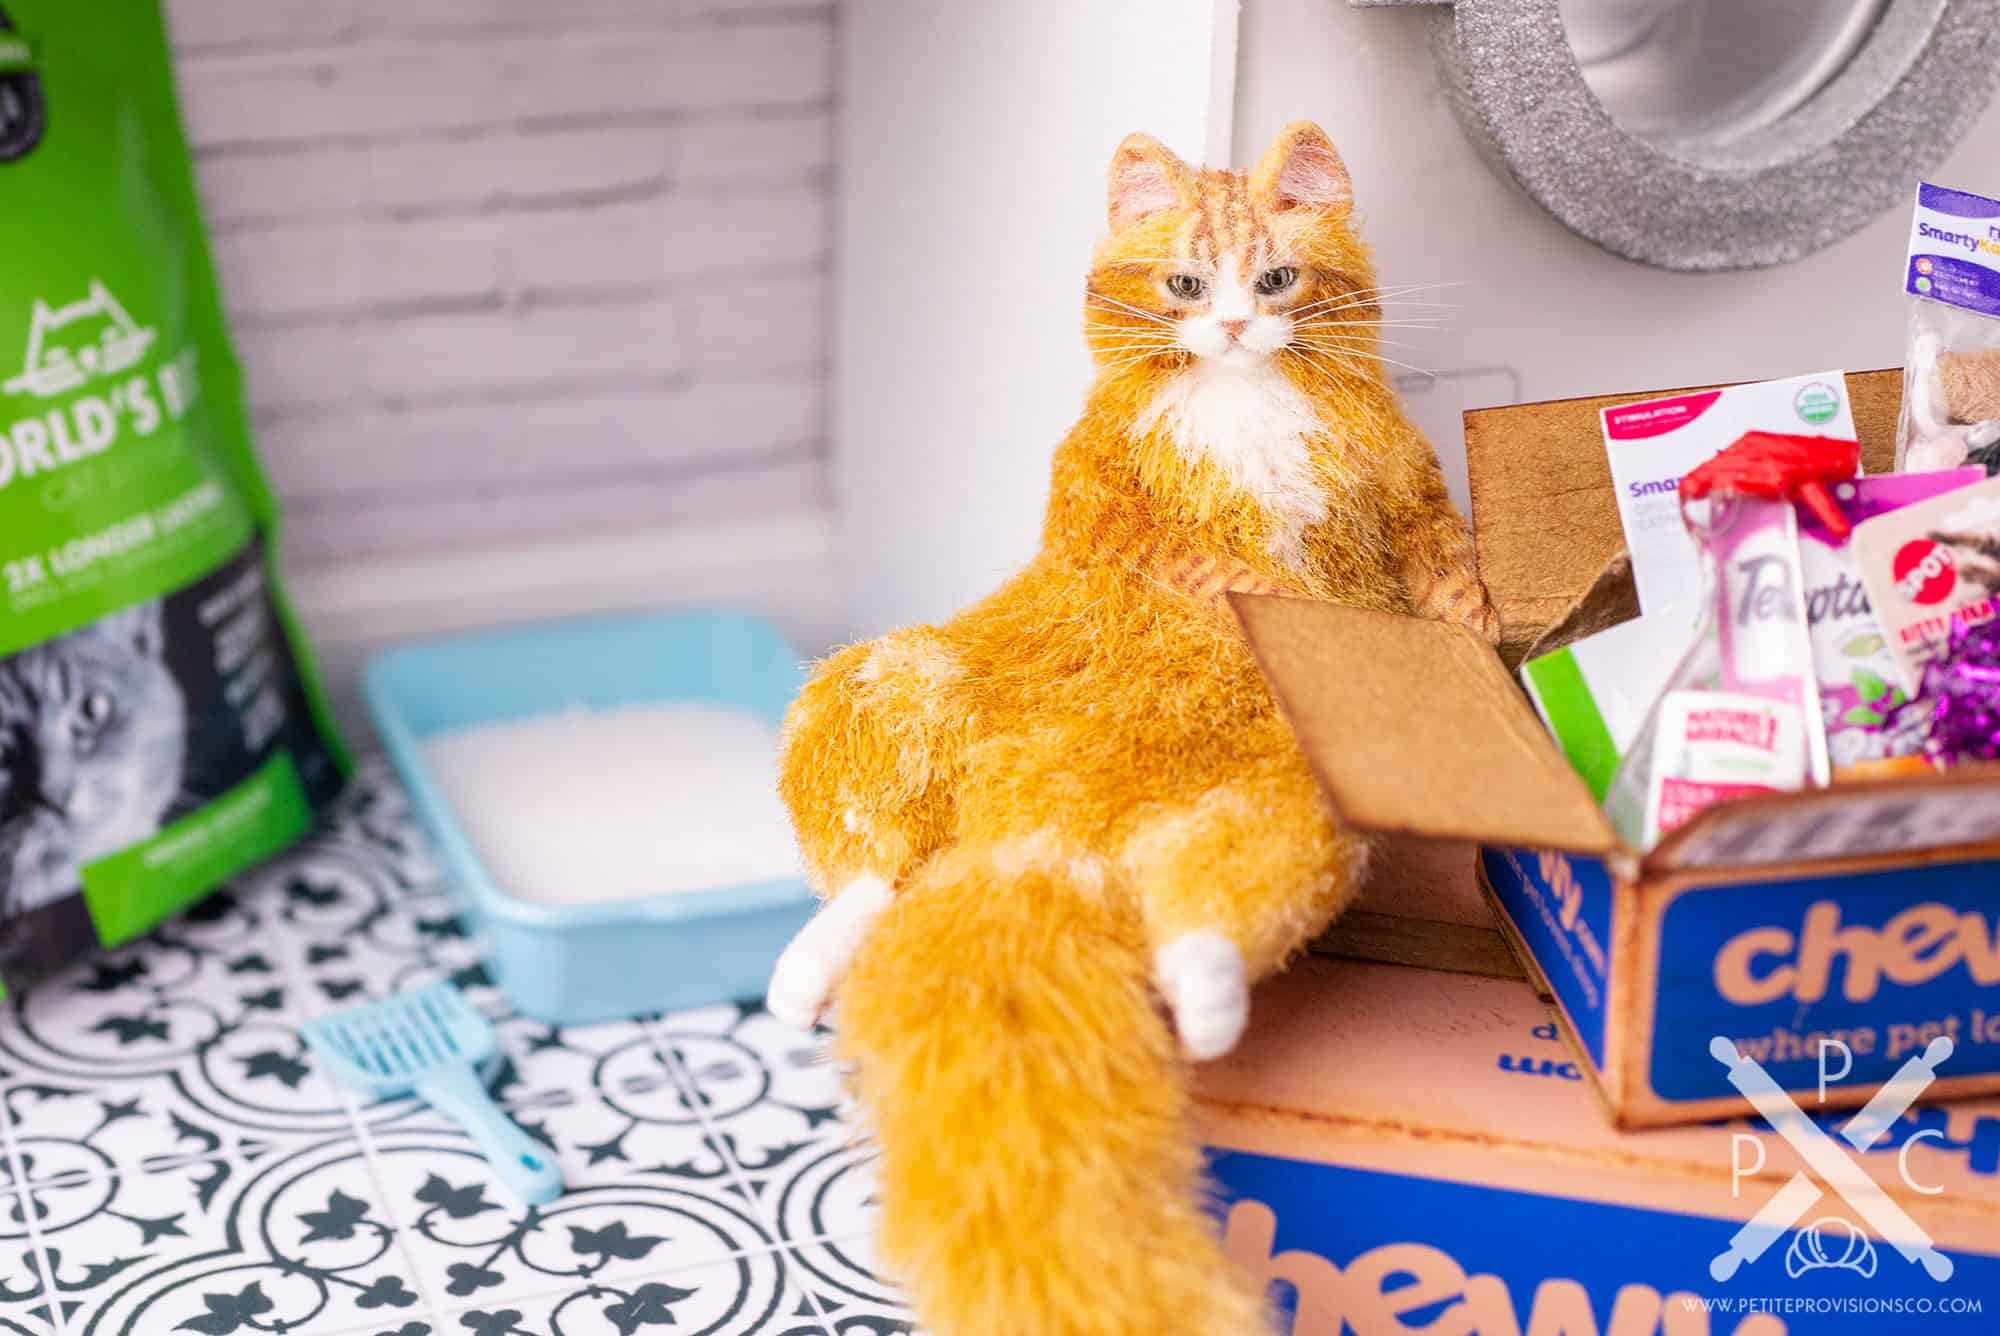 Dollhouse miniature fat orange tabby with a litter box in an one inch scale scene by Erika Pitera, The Petite Provisions Co.